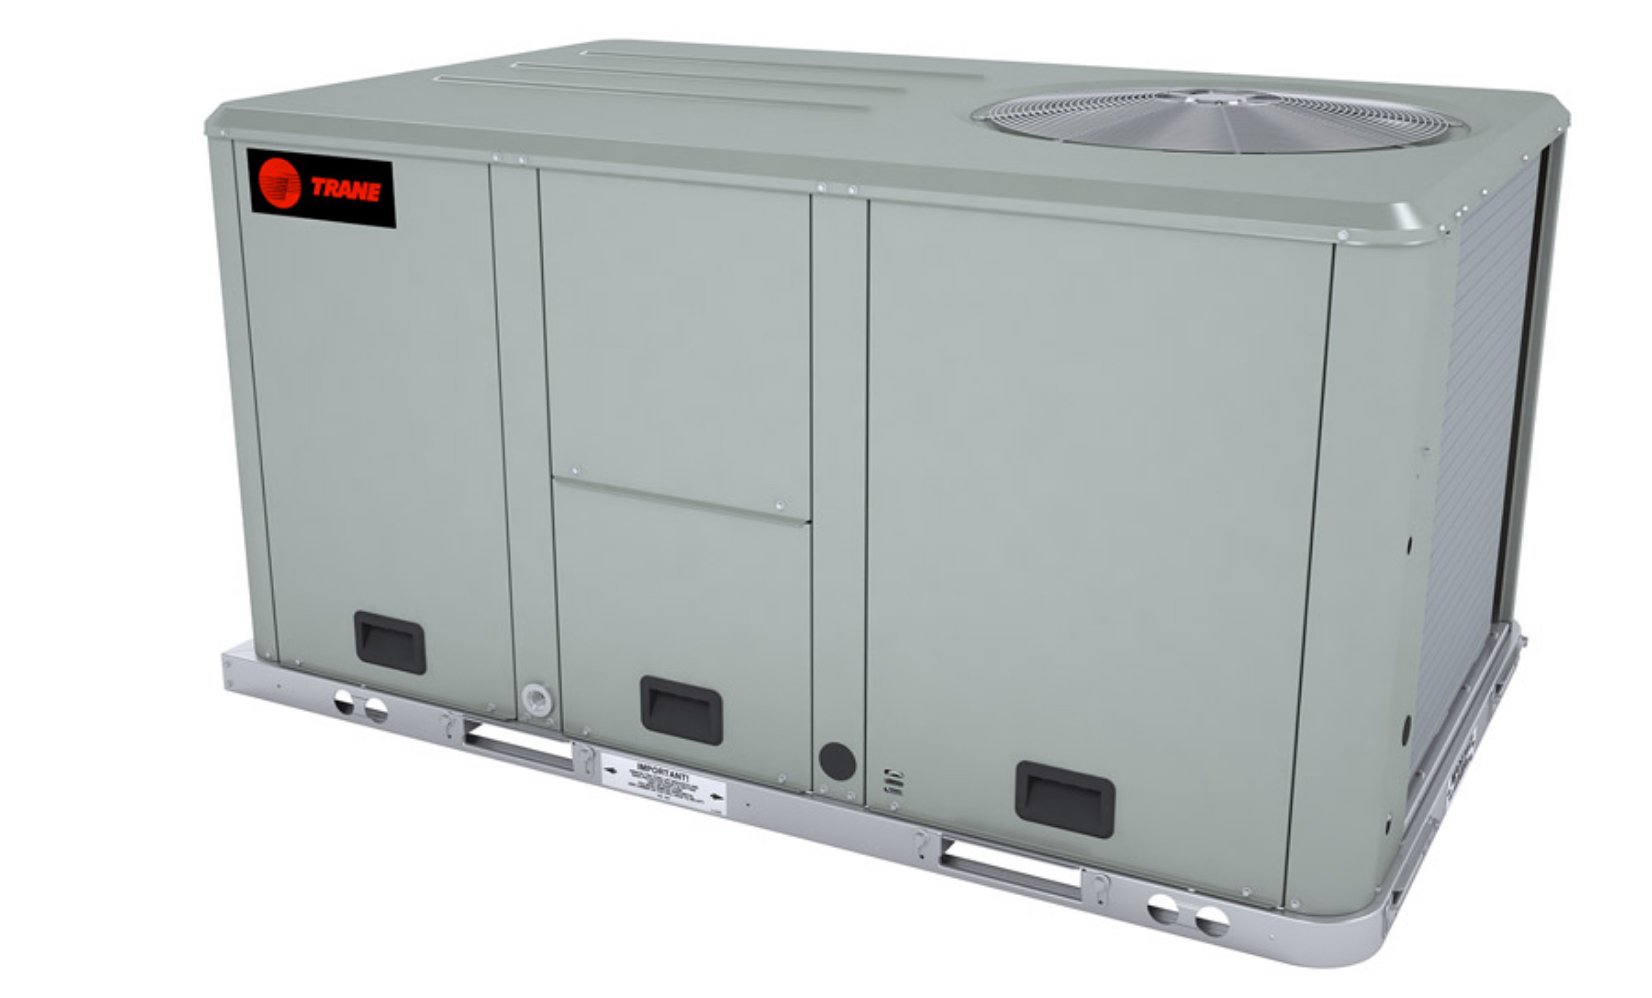 trane package unit air conditioner